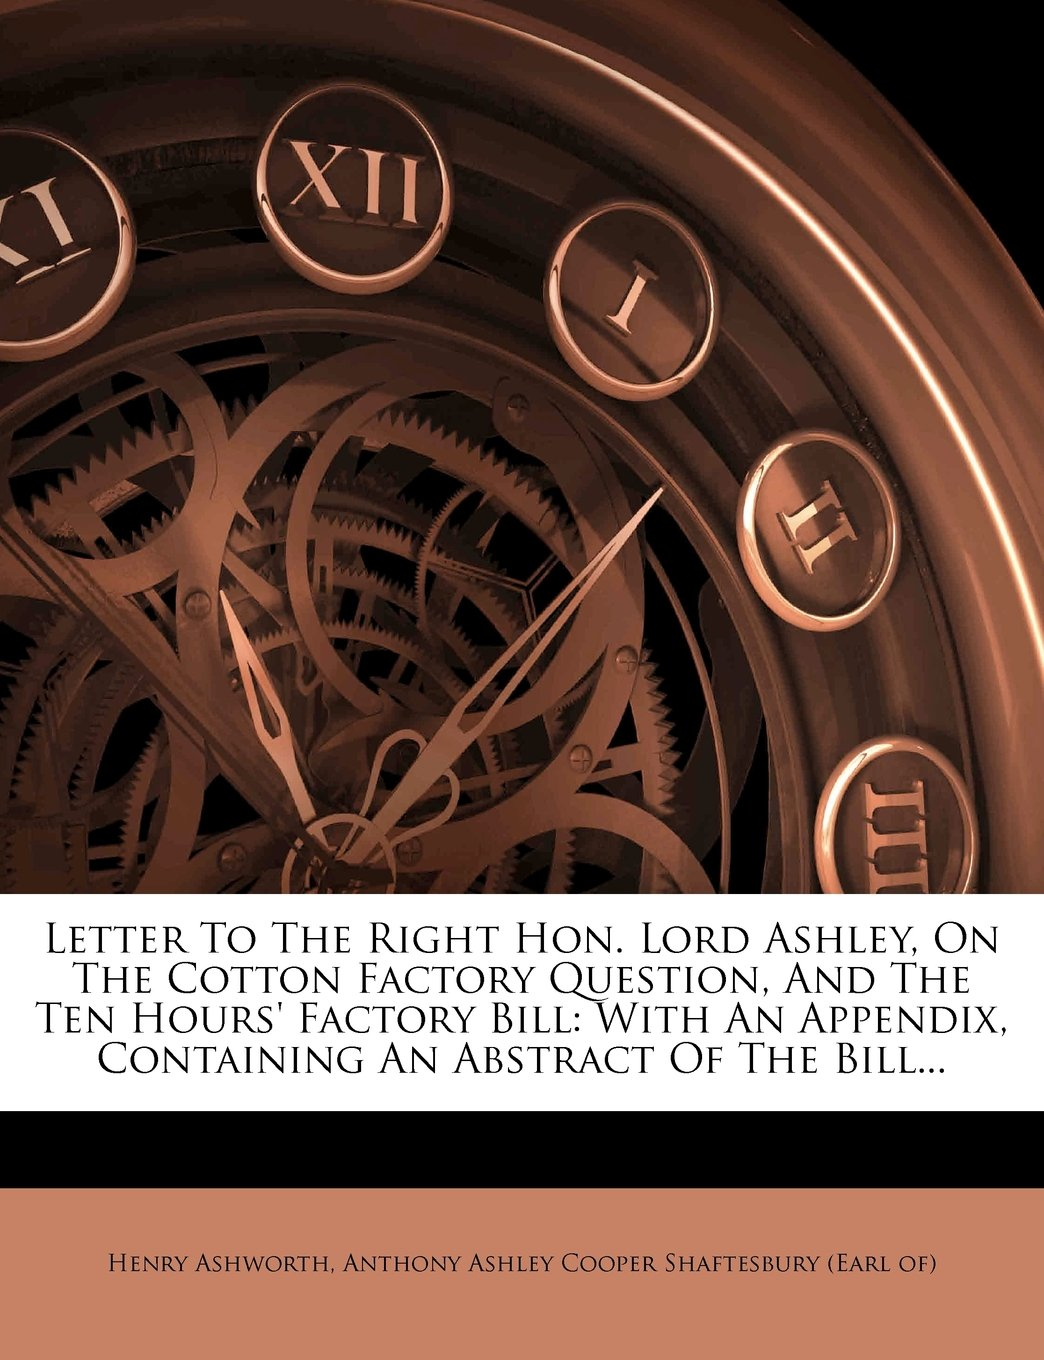 Download Letter To The Right Hon. Lord Ashley, On The Cotton Factory Question, And The Ten Hours' Factory Bill: With An Appendix, Containing An Abstract Of The Bill... PDF